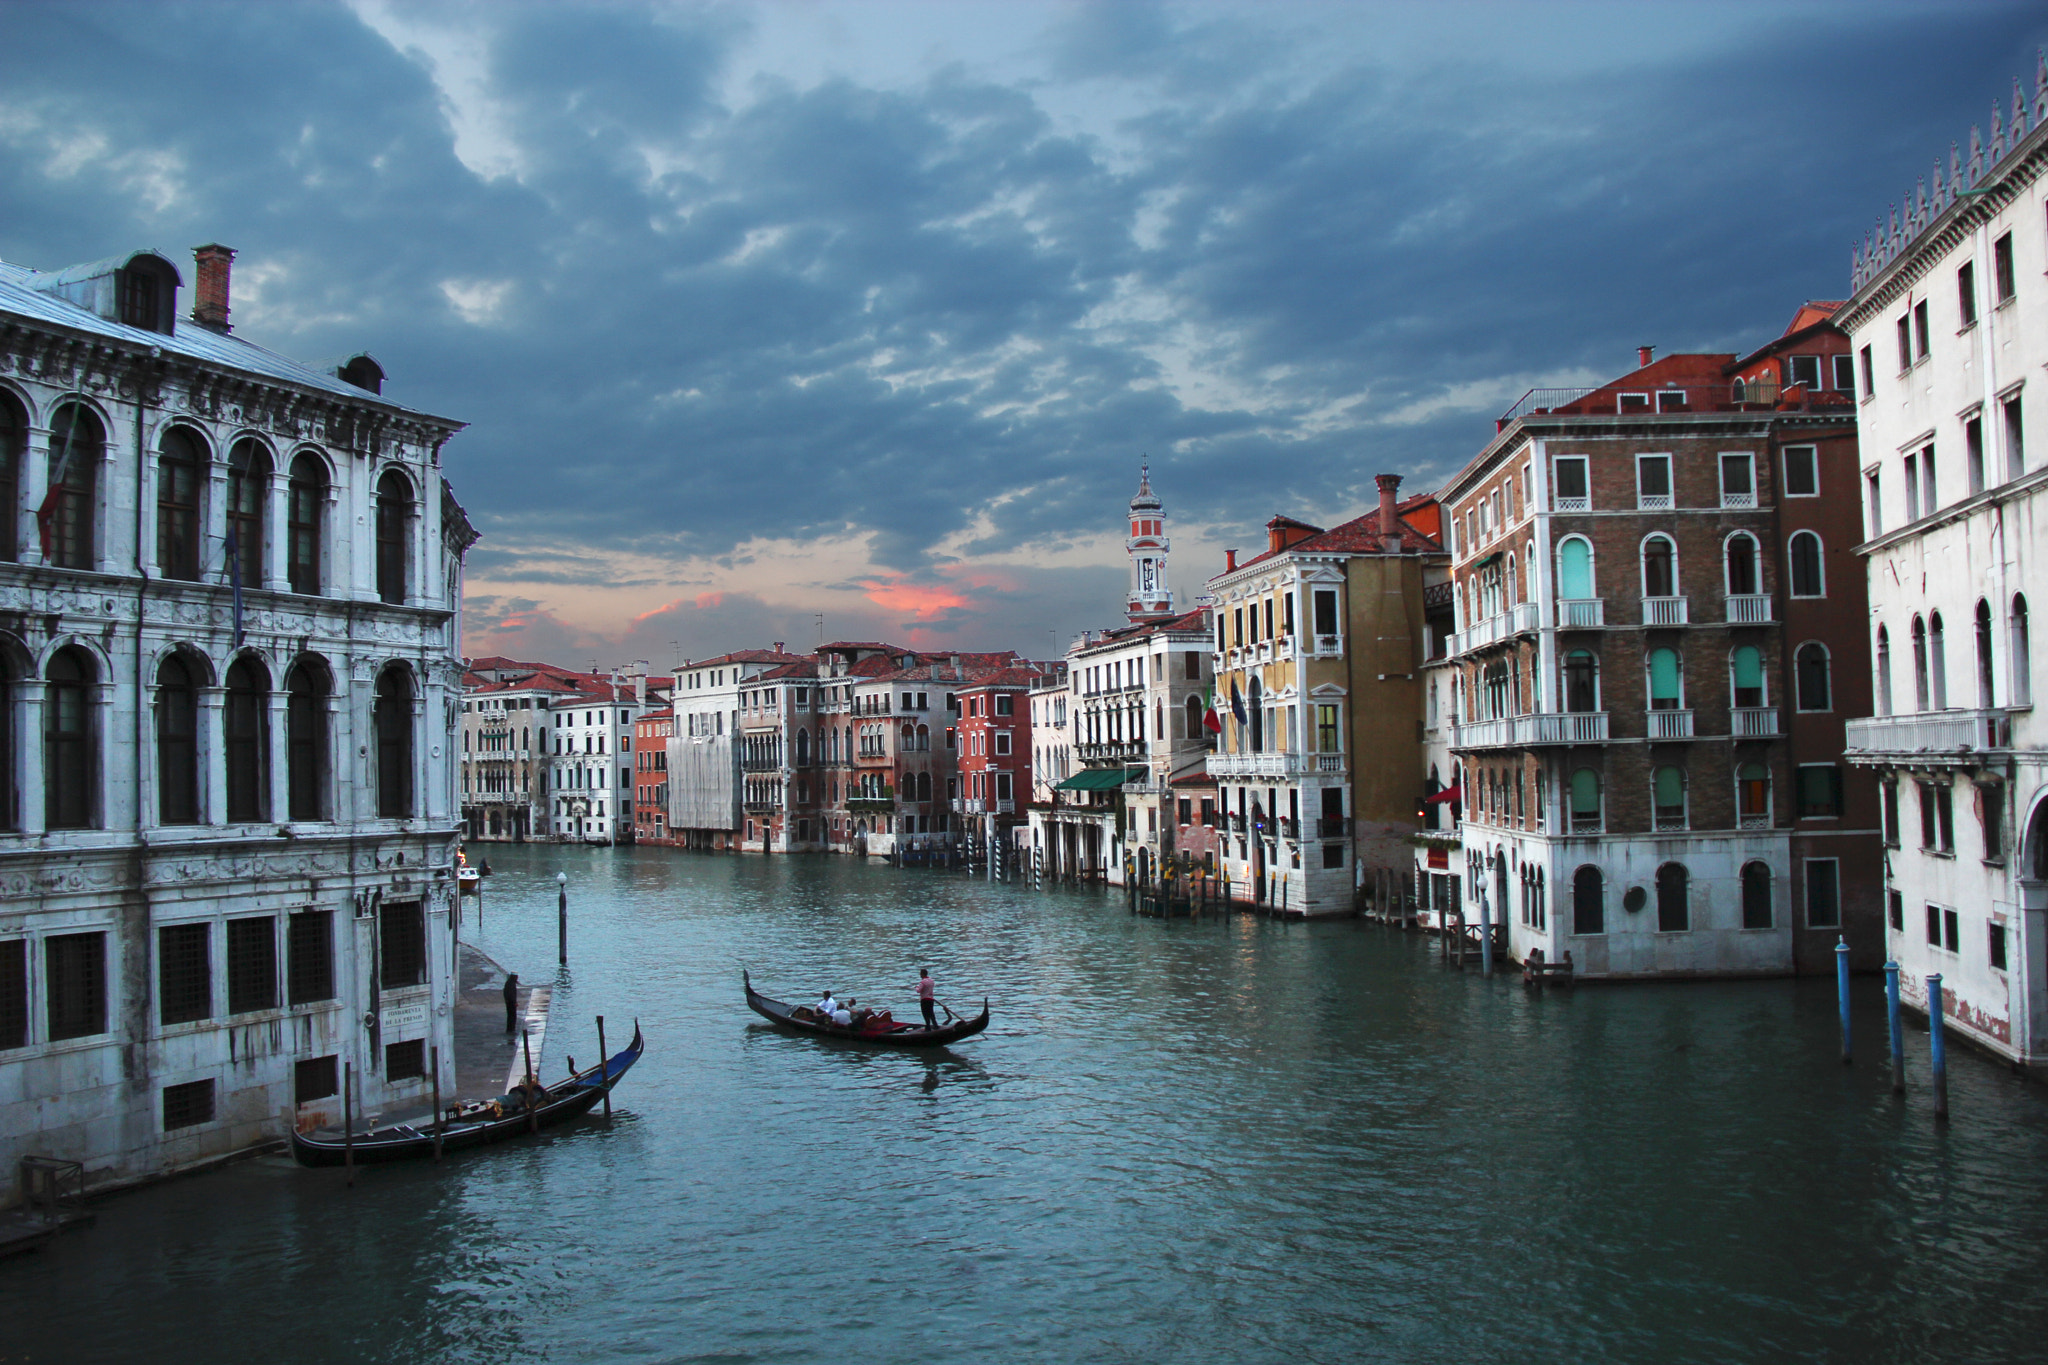 Photograph Venetian sunset by Carlos Luque on 500px